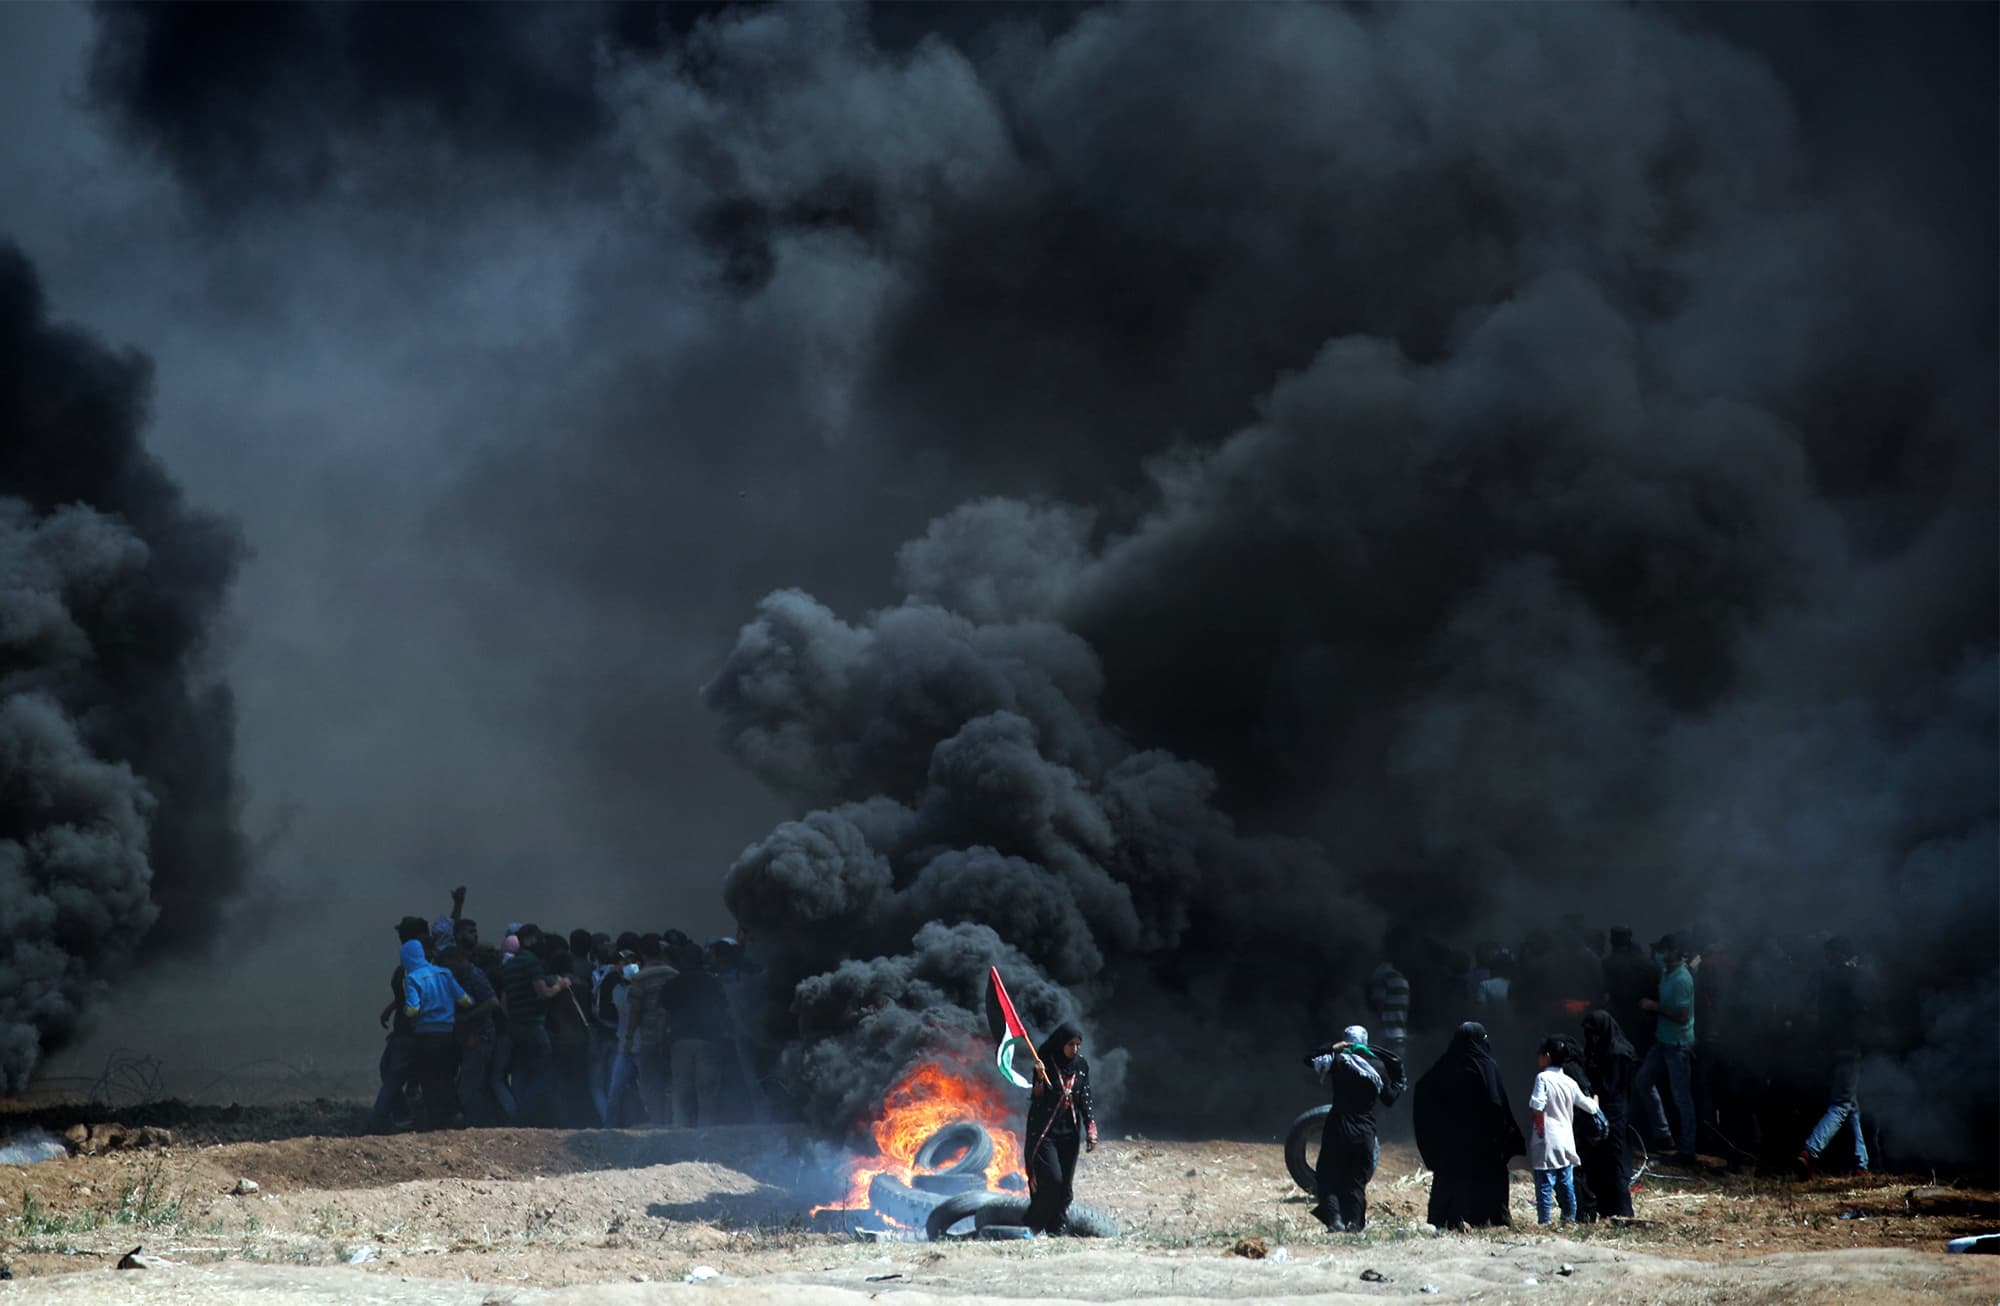 Palestinians burn tyres as they clash with Israeli forces near the border between the Gaza strip and Israel. — AFP